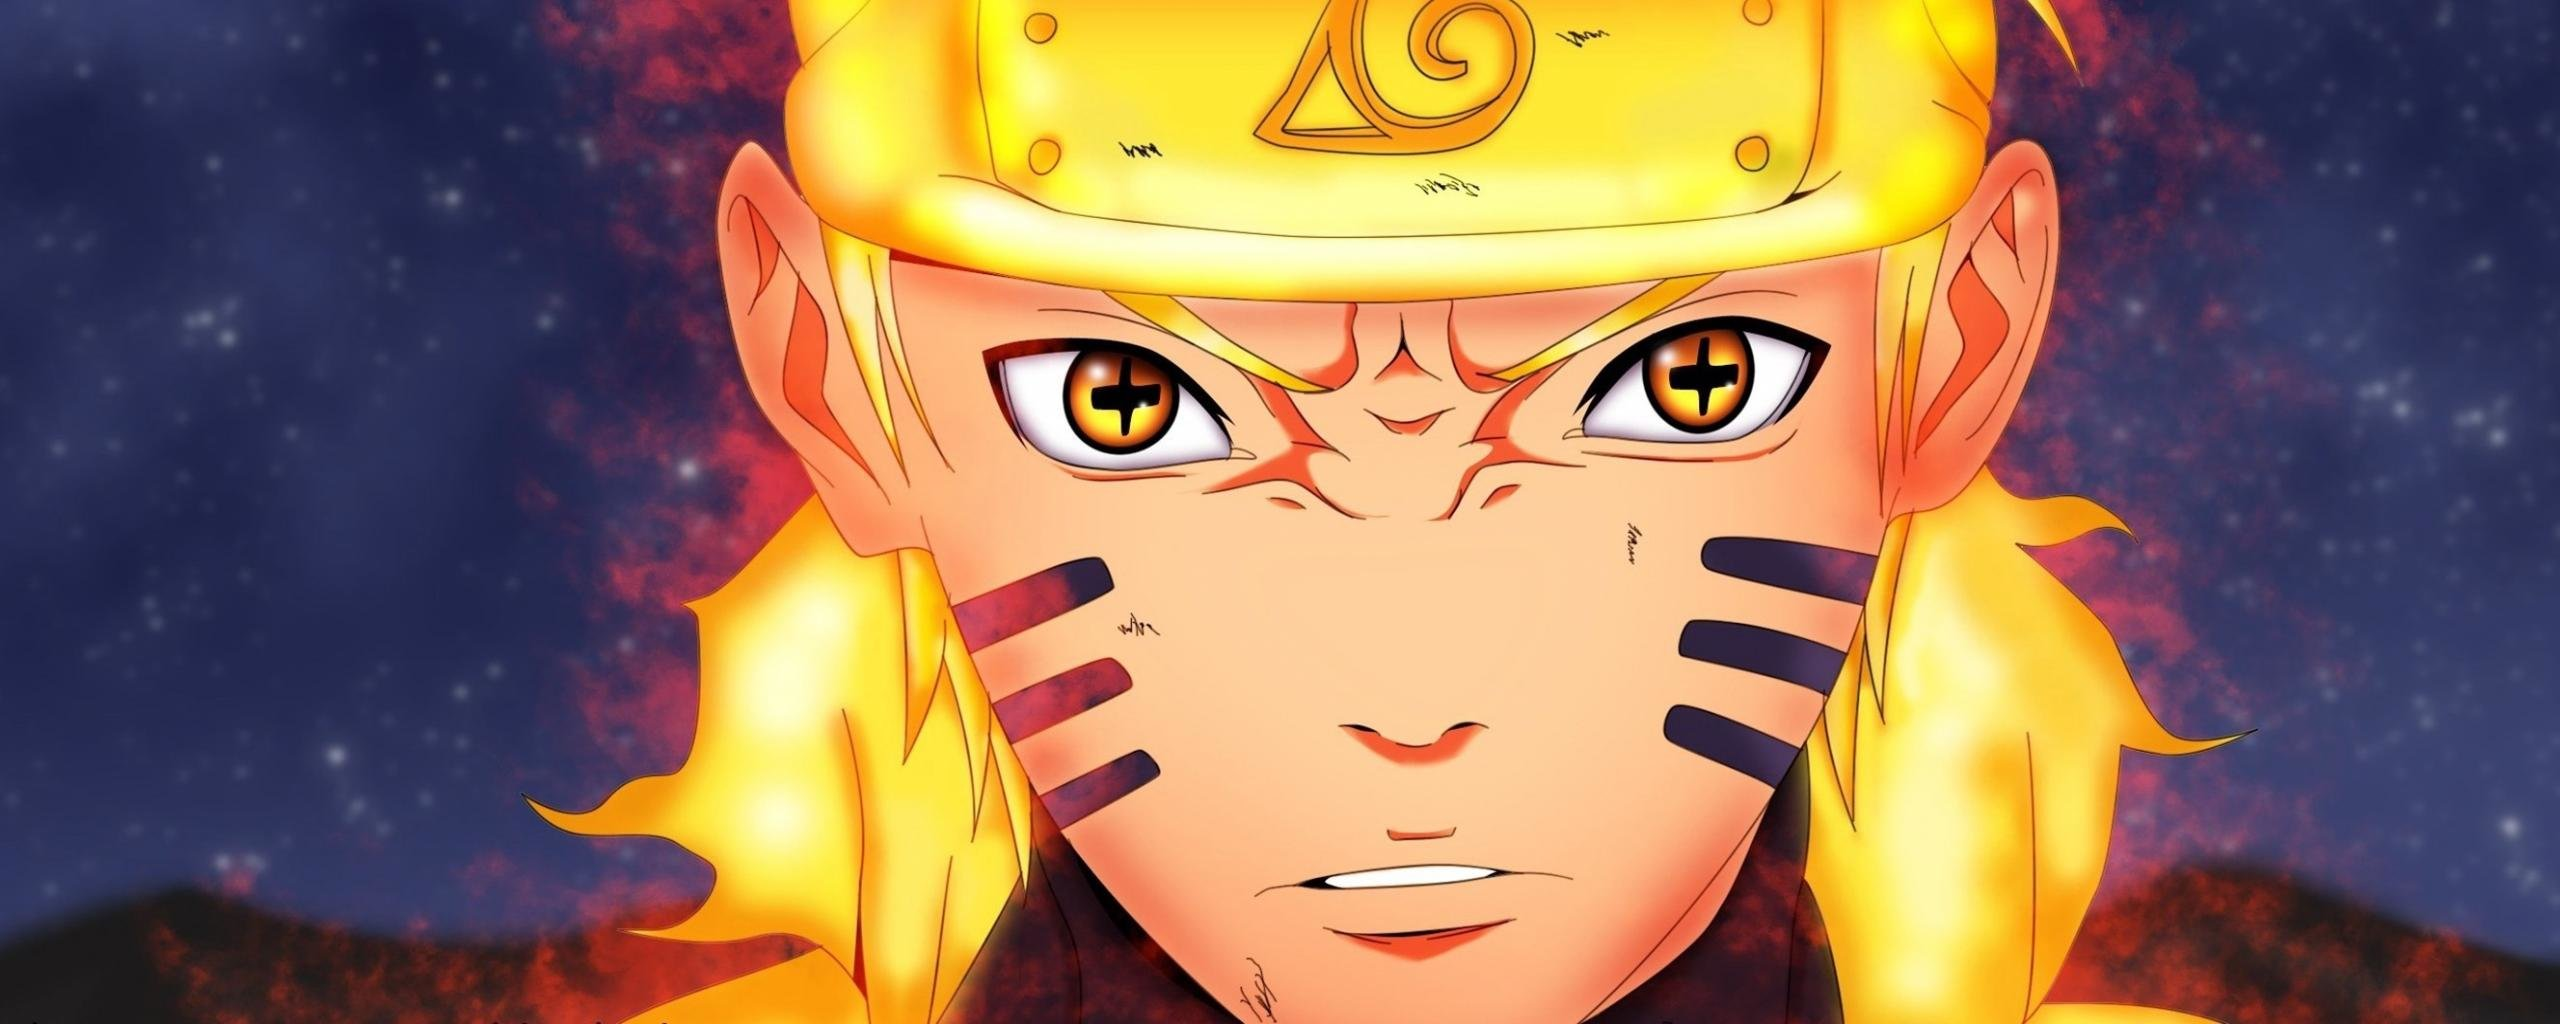 Free download Naruto Uzumaki wallpaper ID:396230 dual monitor 2569x1024 for computer